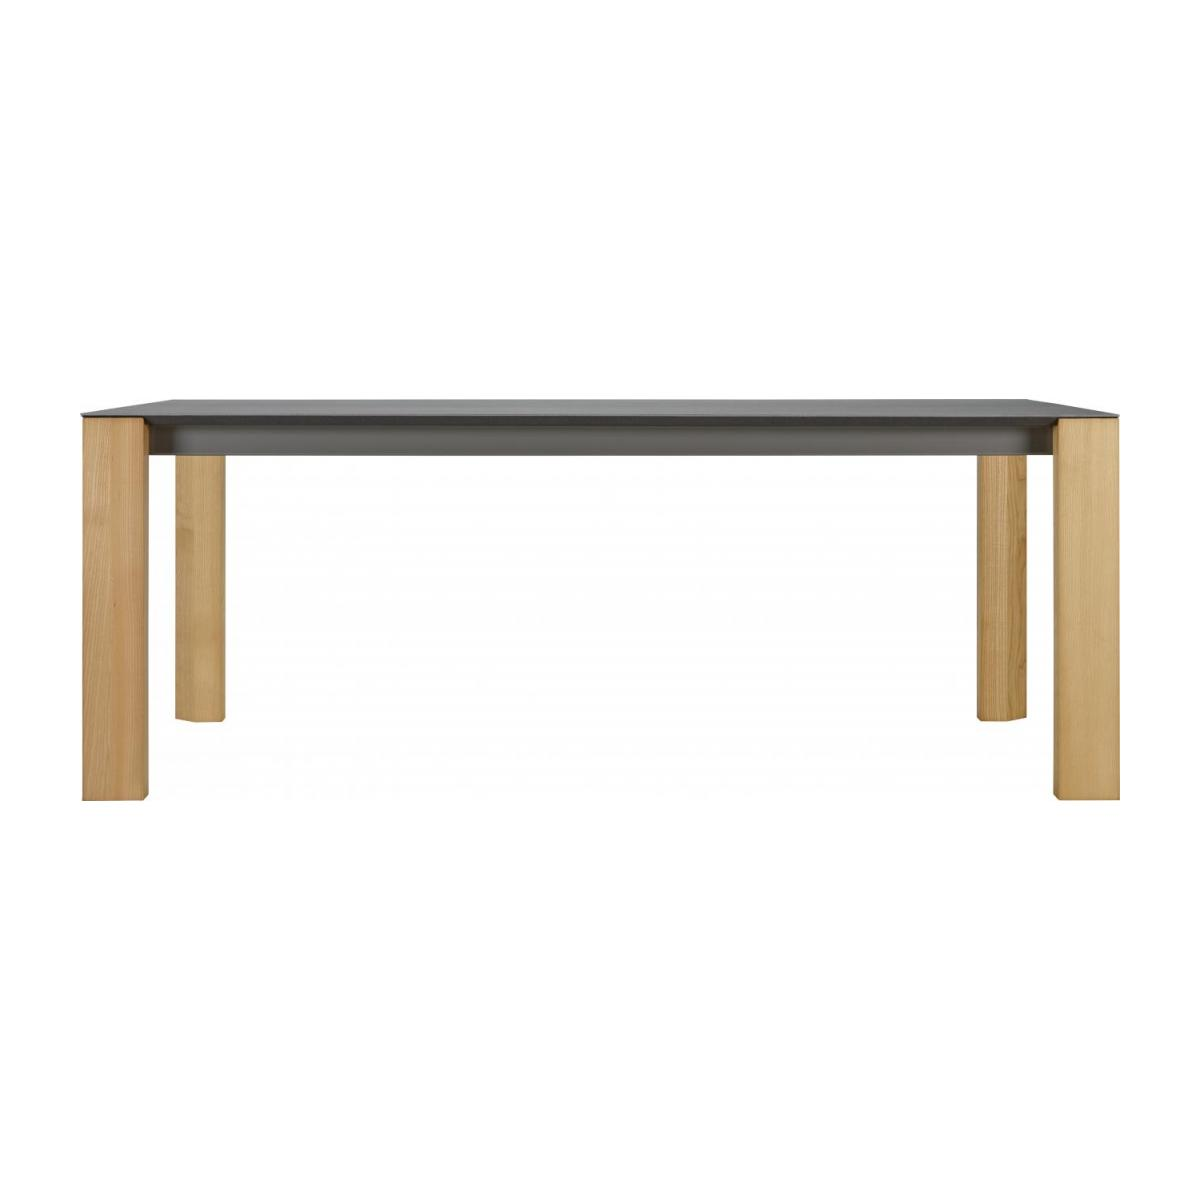 Giulia White Ceramic Dining Table 200 Cm Habitat